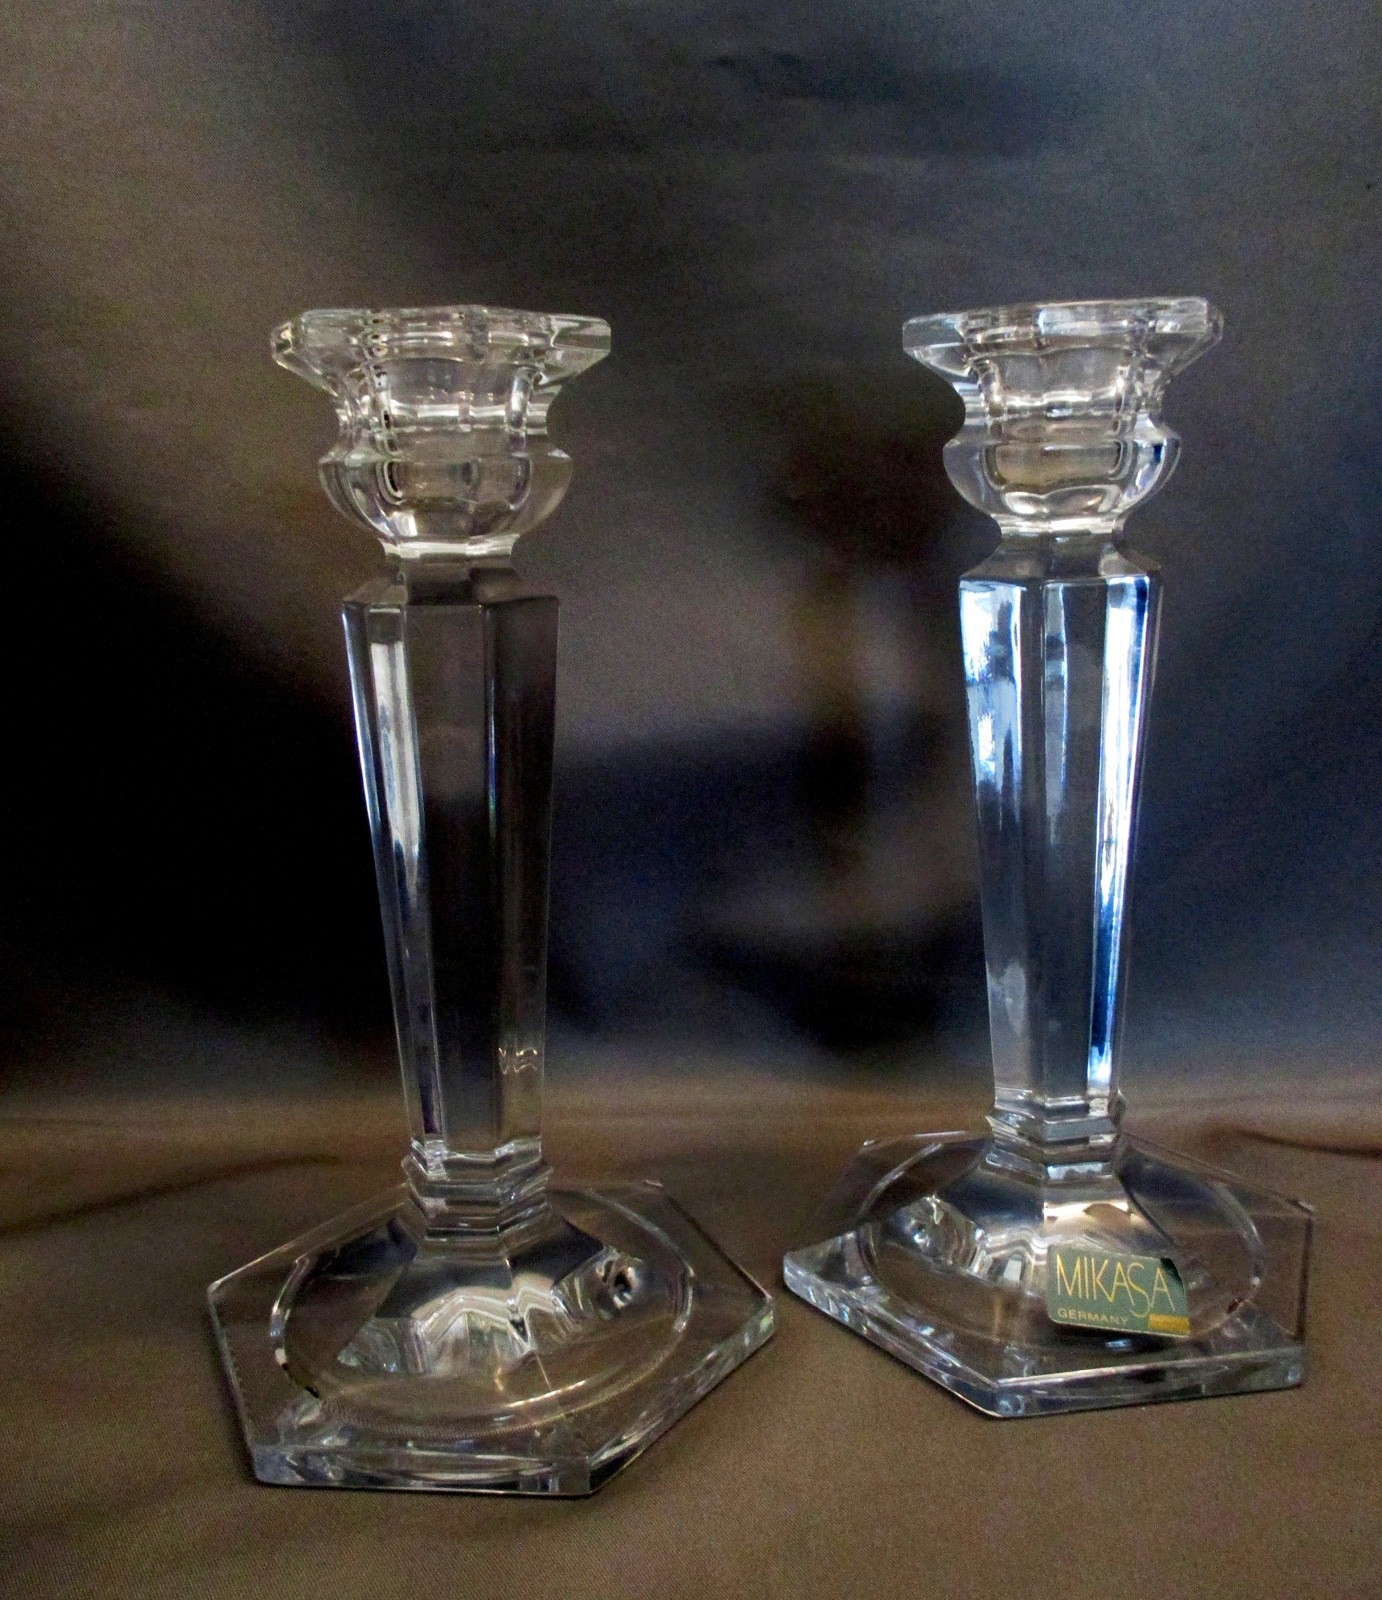 Matching Pr .Mikasa Cambridge 6.5-Inch Taper Candle Holders~Elegant